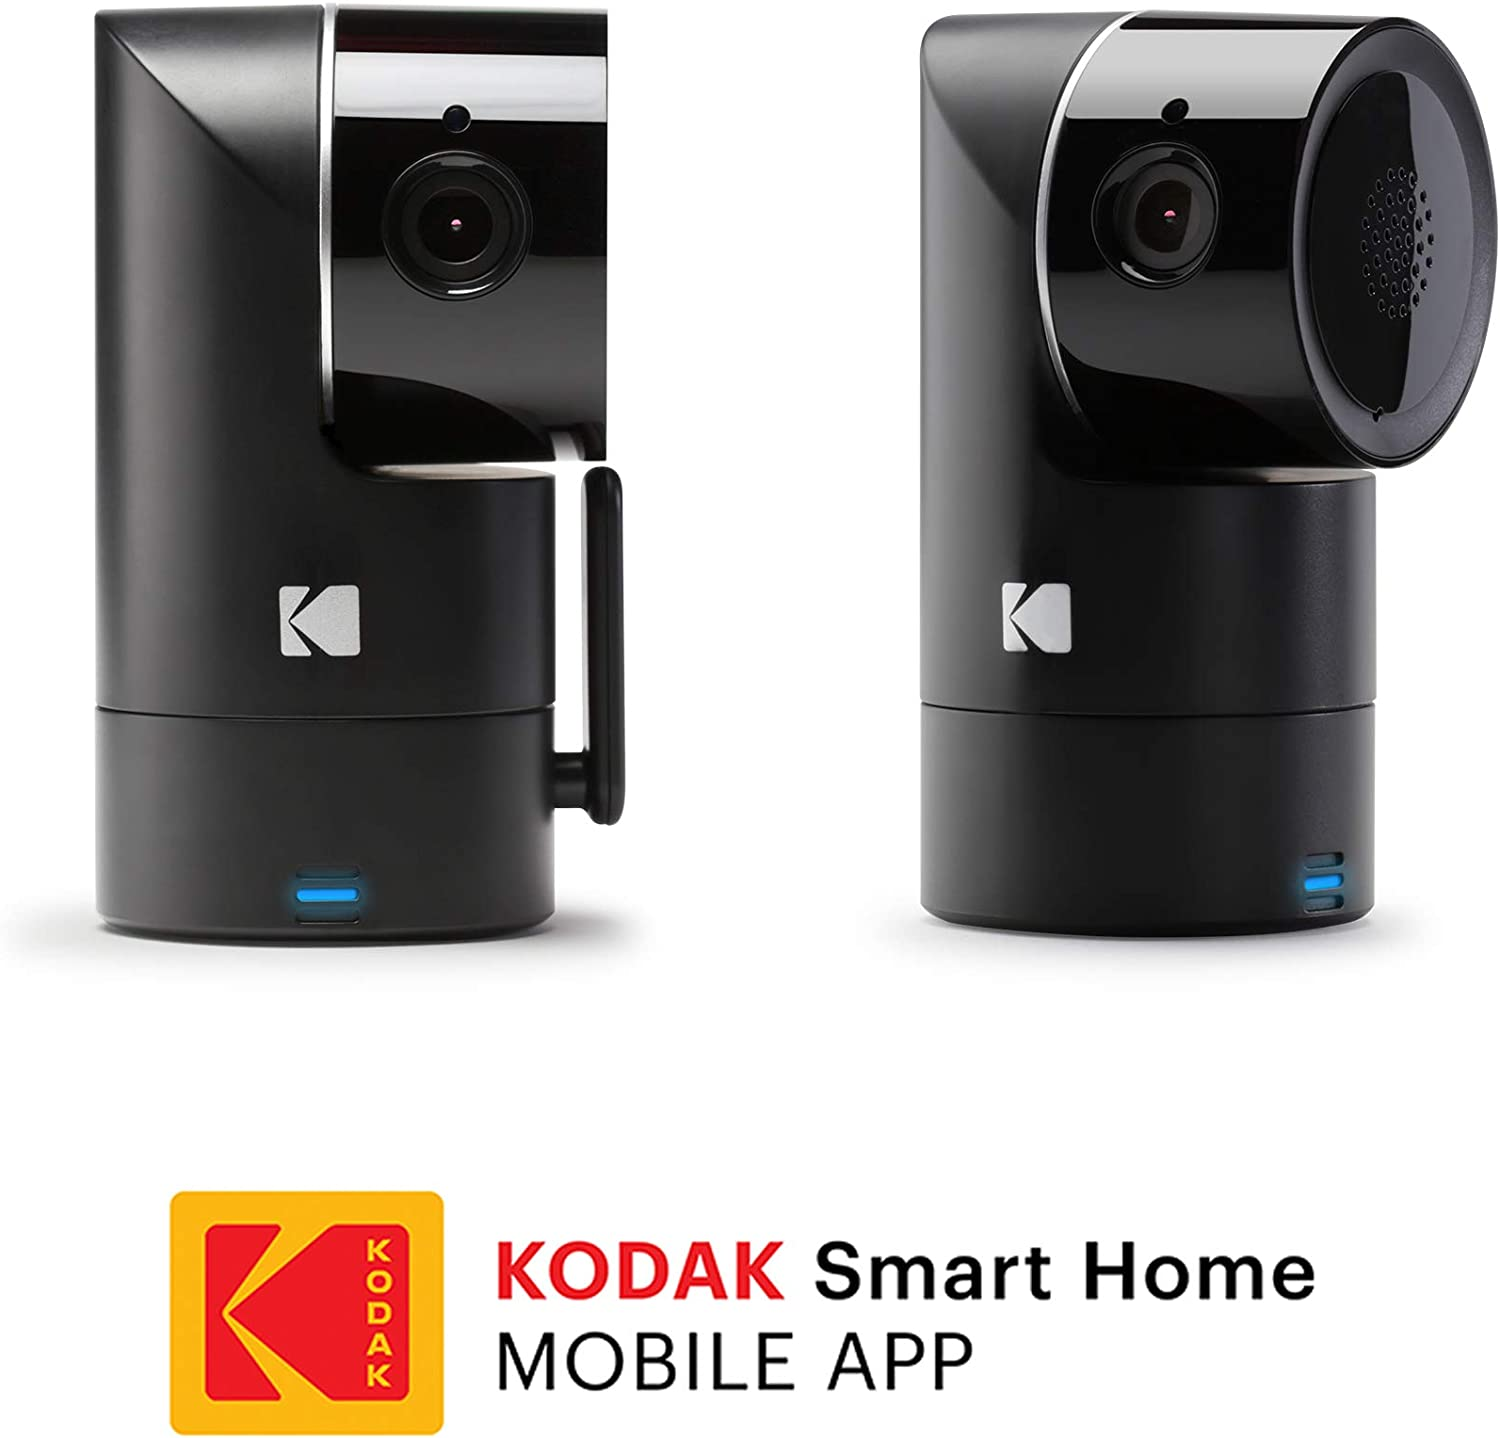 KODAK Cherish F685 Home Security Camera 2-Pack with Mobile App – Full-HD Wireless Security Camera System with Infrared Night-Vision, Battery, Tilt, Pan, Zoom – Surveillance Camera, WiFi Camera